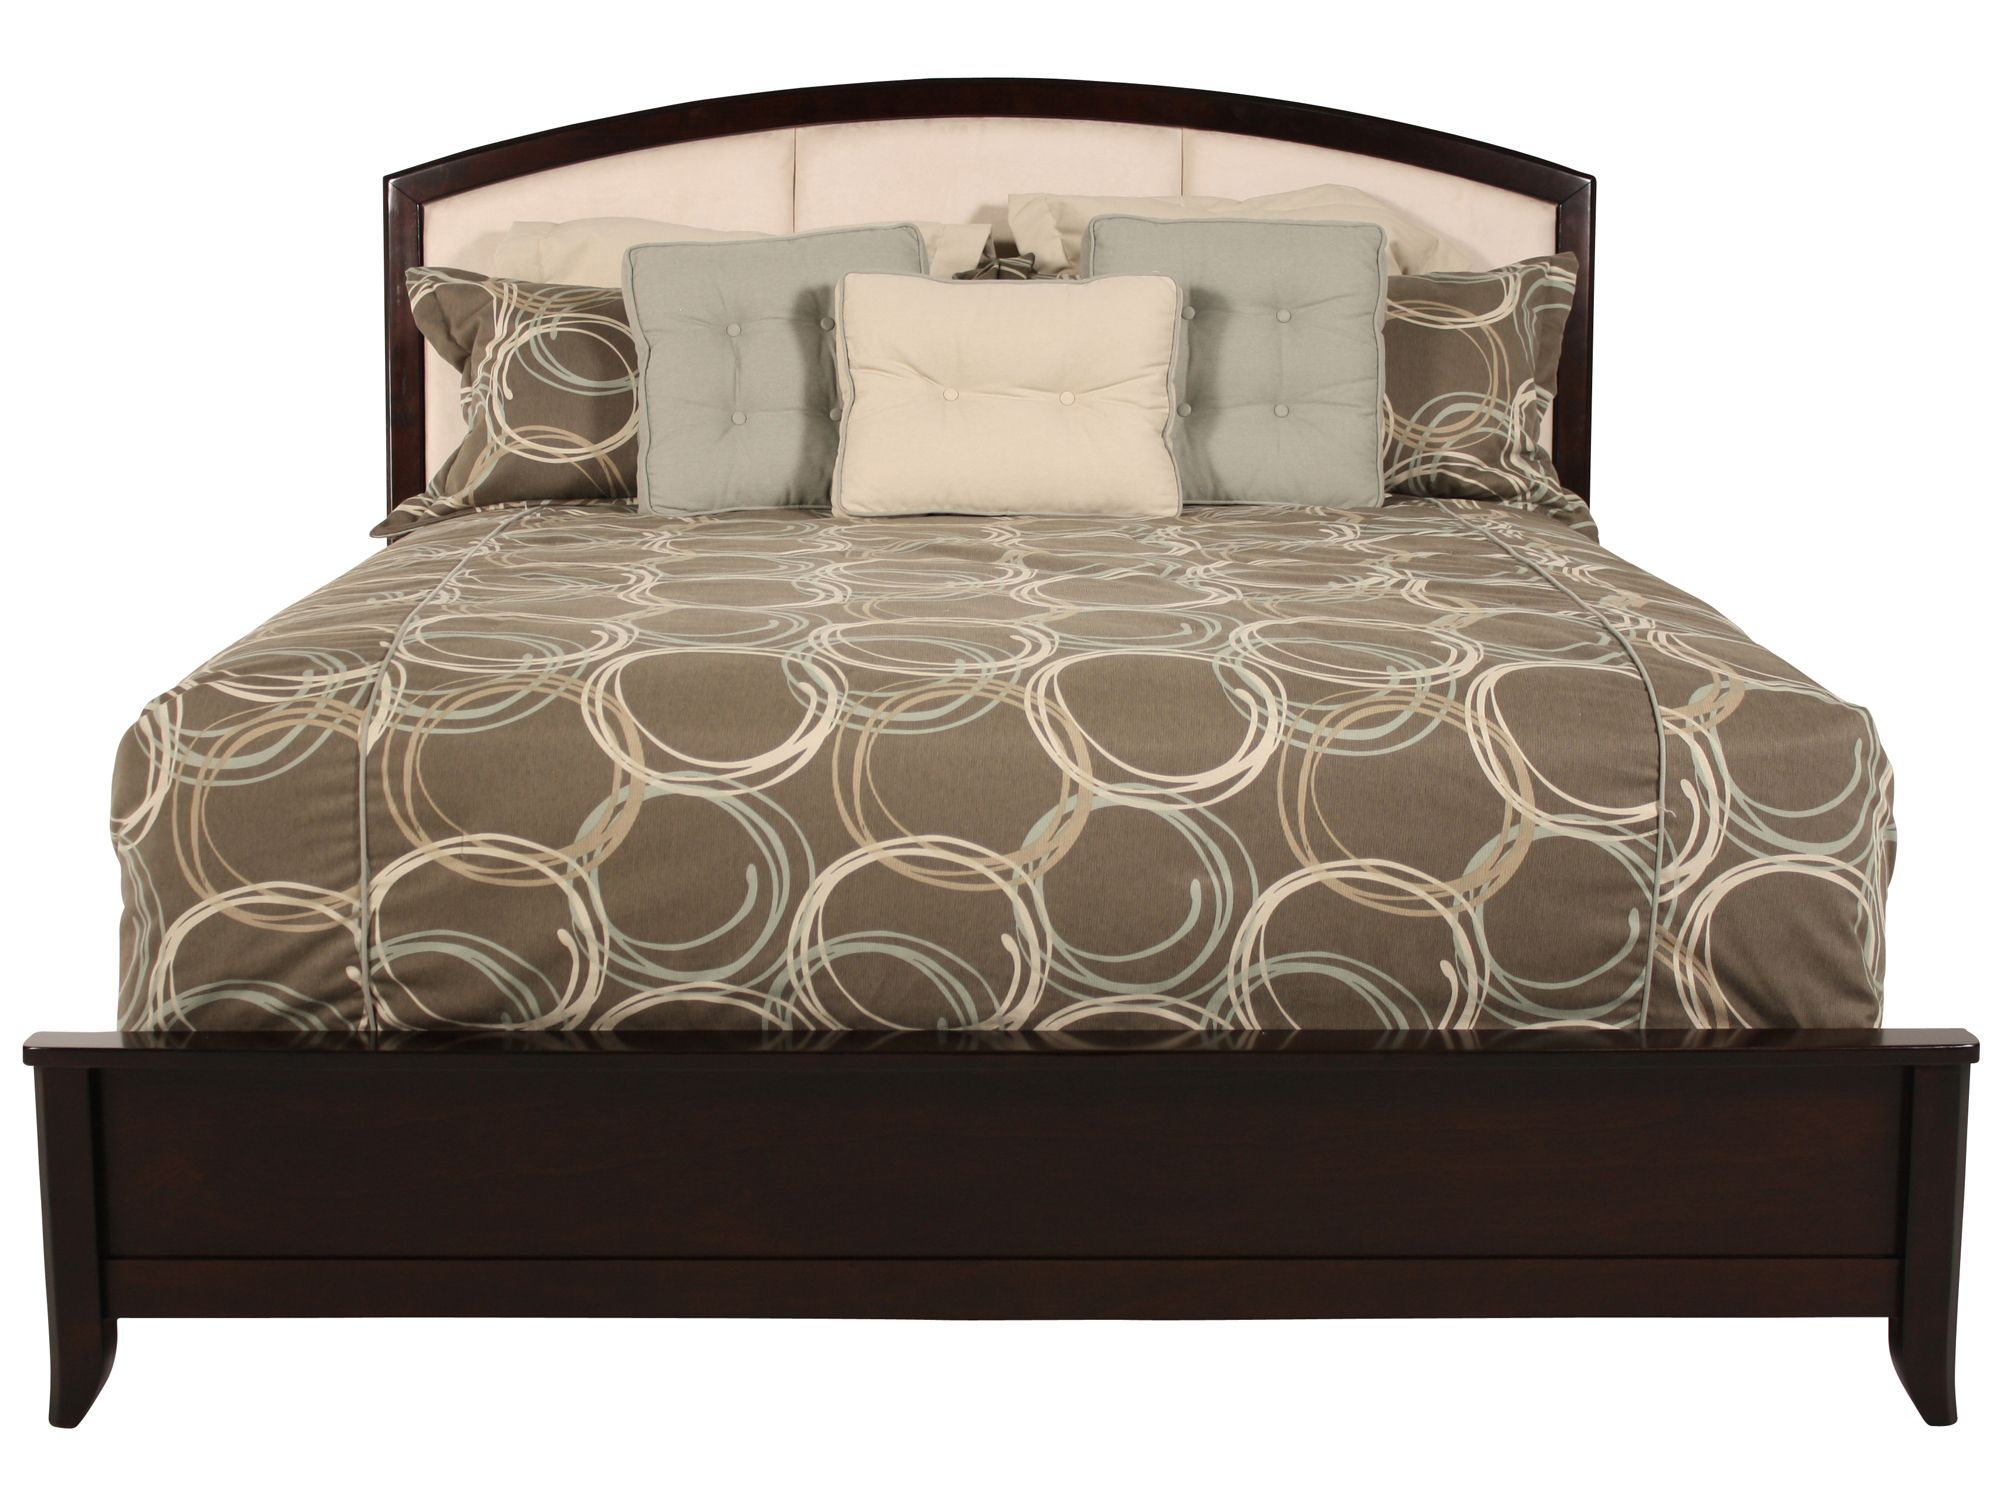 ashley lynx queen bedframe mathis brothers 277 95 for the home